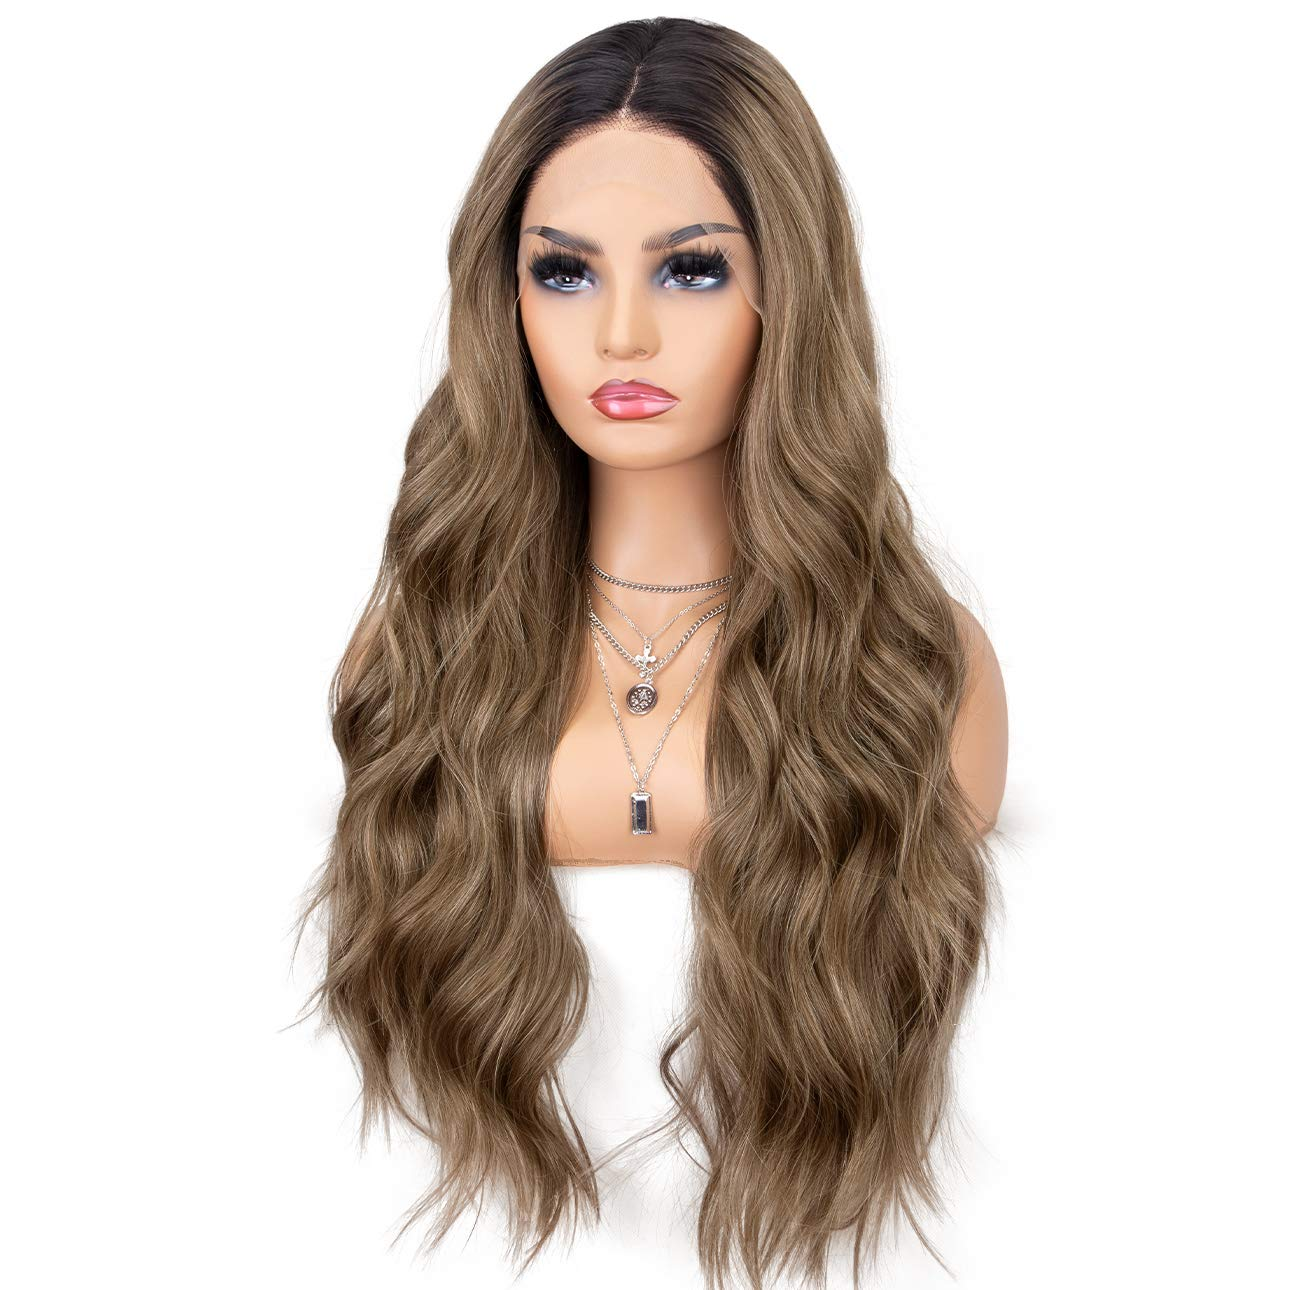 K'ryssma Brown Lace Front Wigs Ombre Dark Roots Natural Looking Glueless Long Wavy Synthetic Wig for Women 2 Tone Heat Resistant 22 inches by K'ryssma